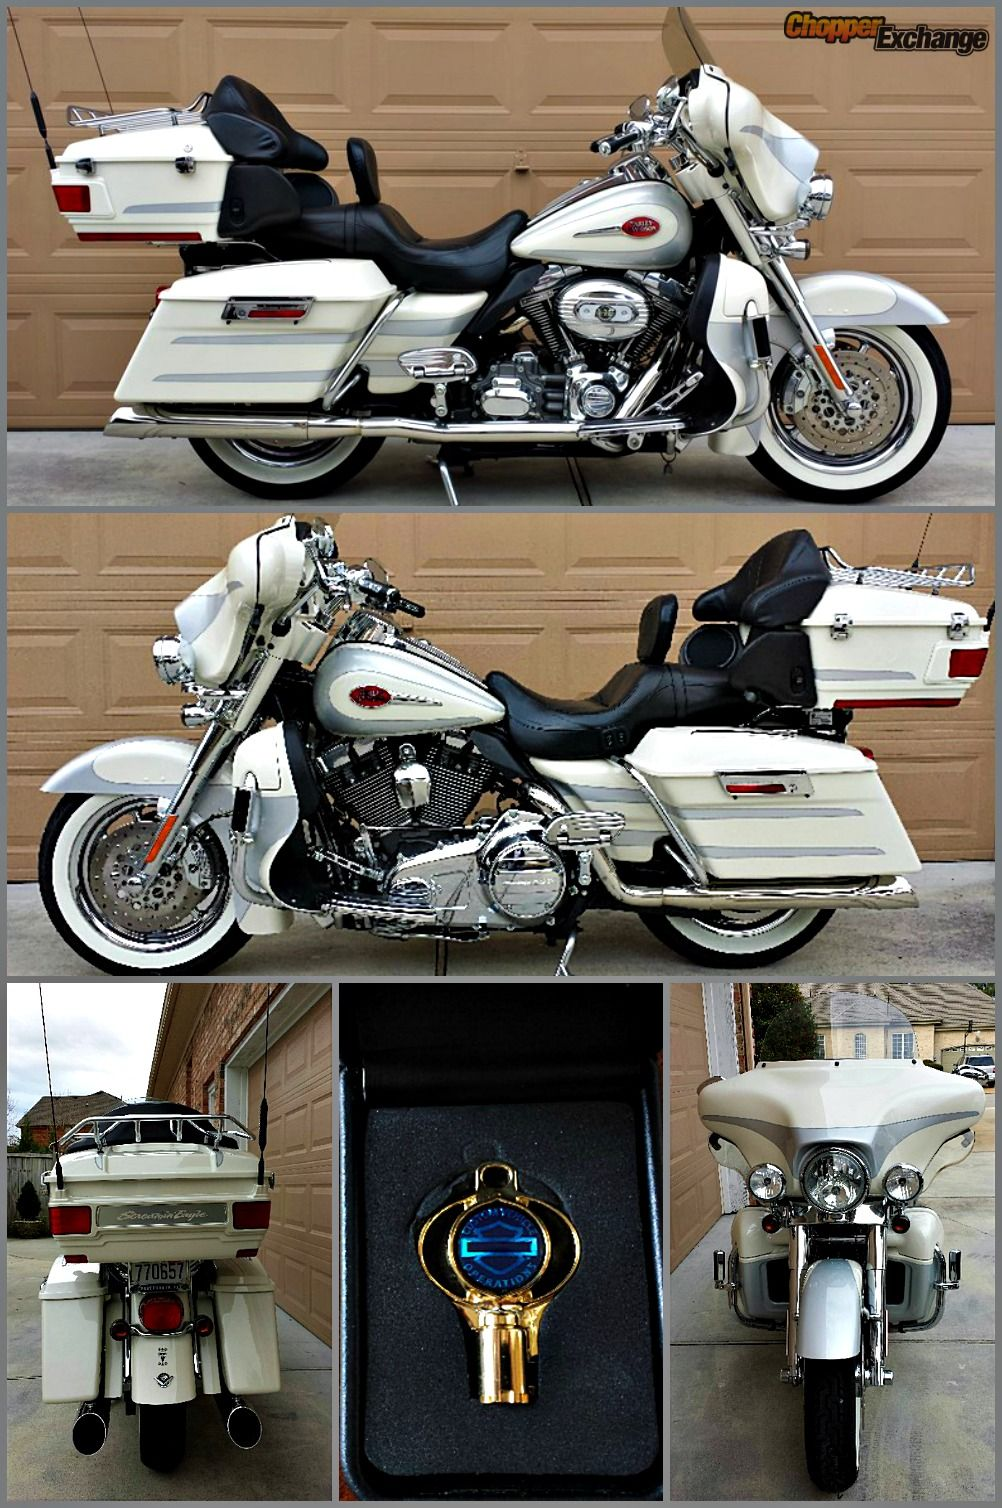 For 2008 Harley Davidson Screamin Eagle Ultra Clic Electra Glide Chesapeake Va Click The Image More Details And Photos Or Go Www